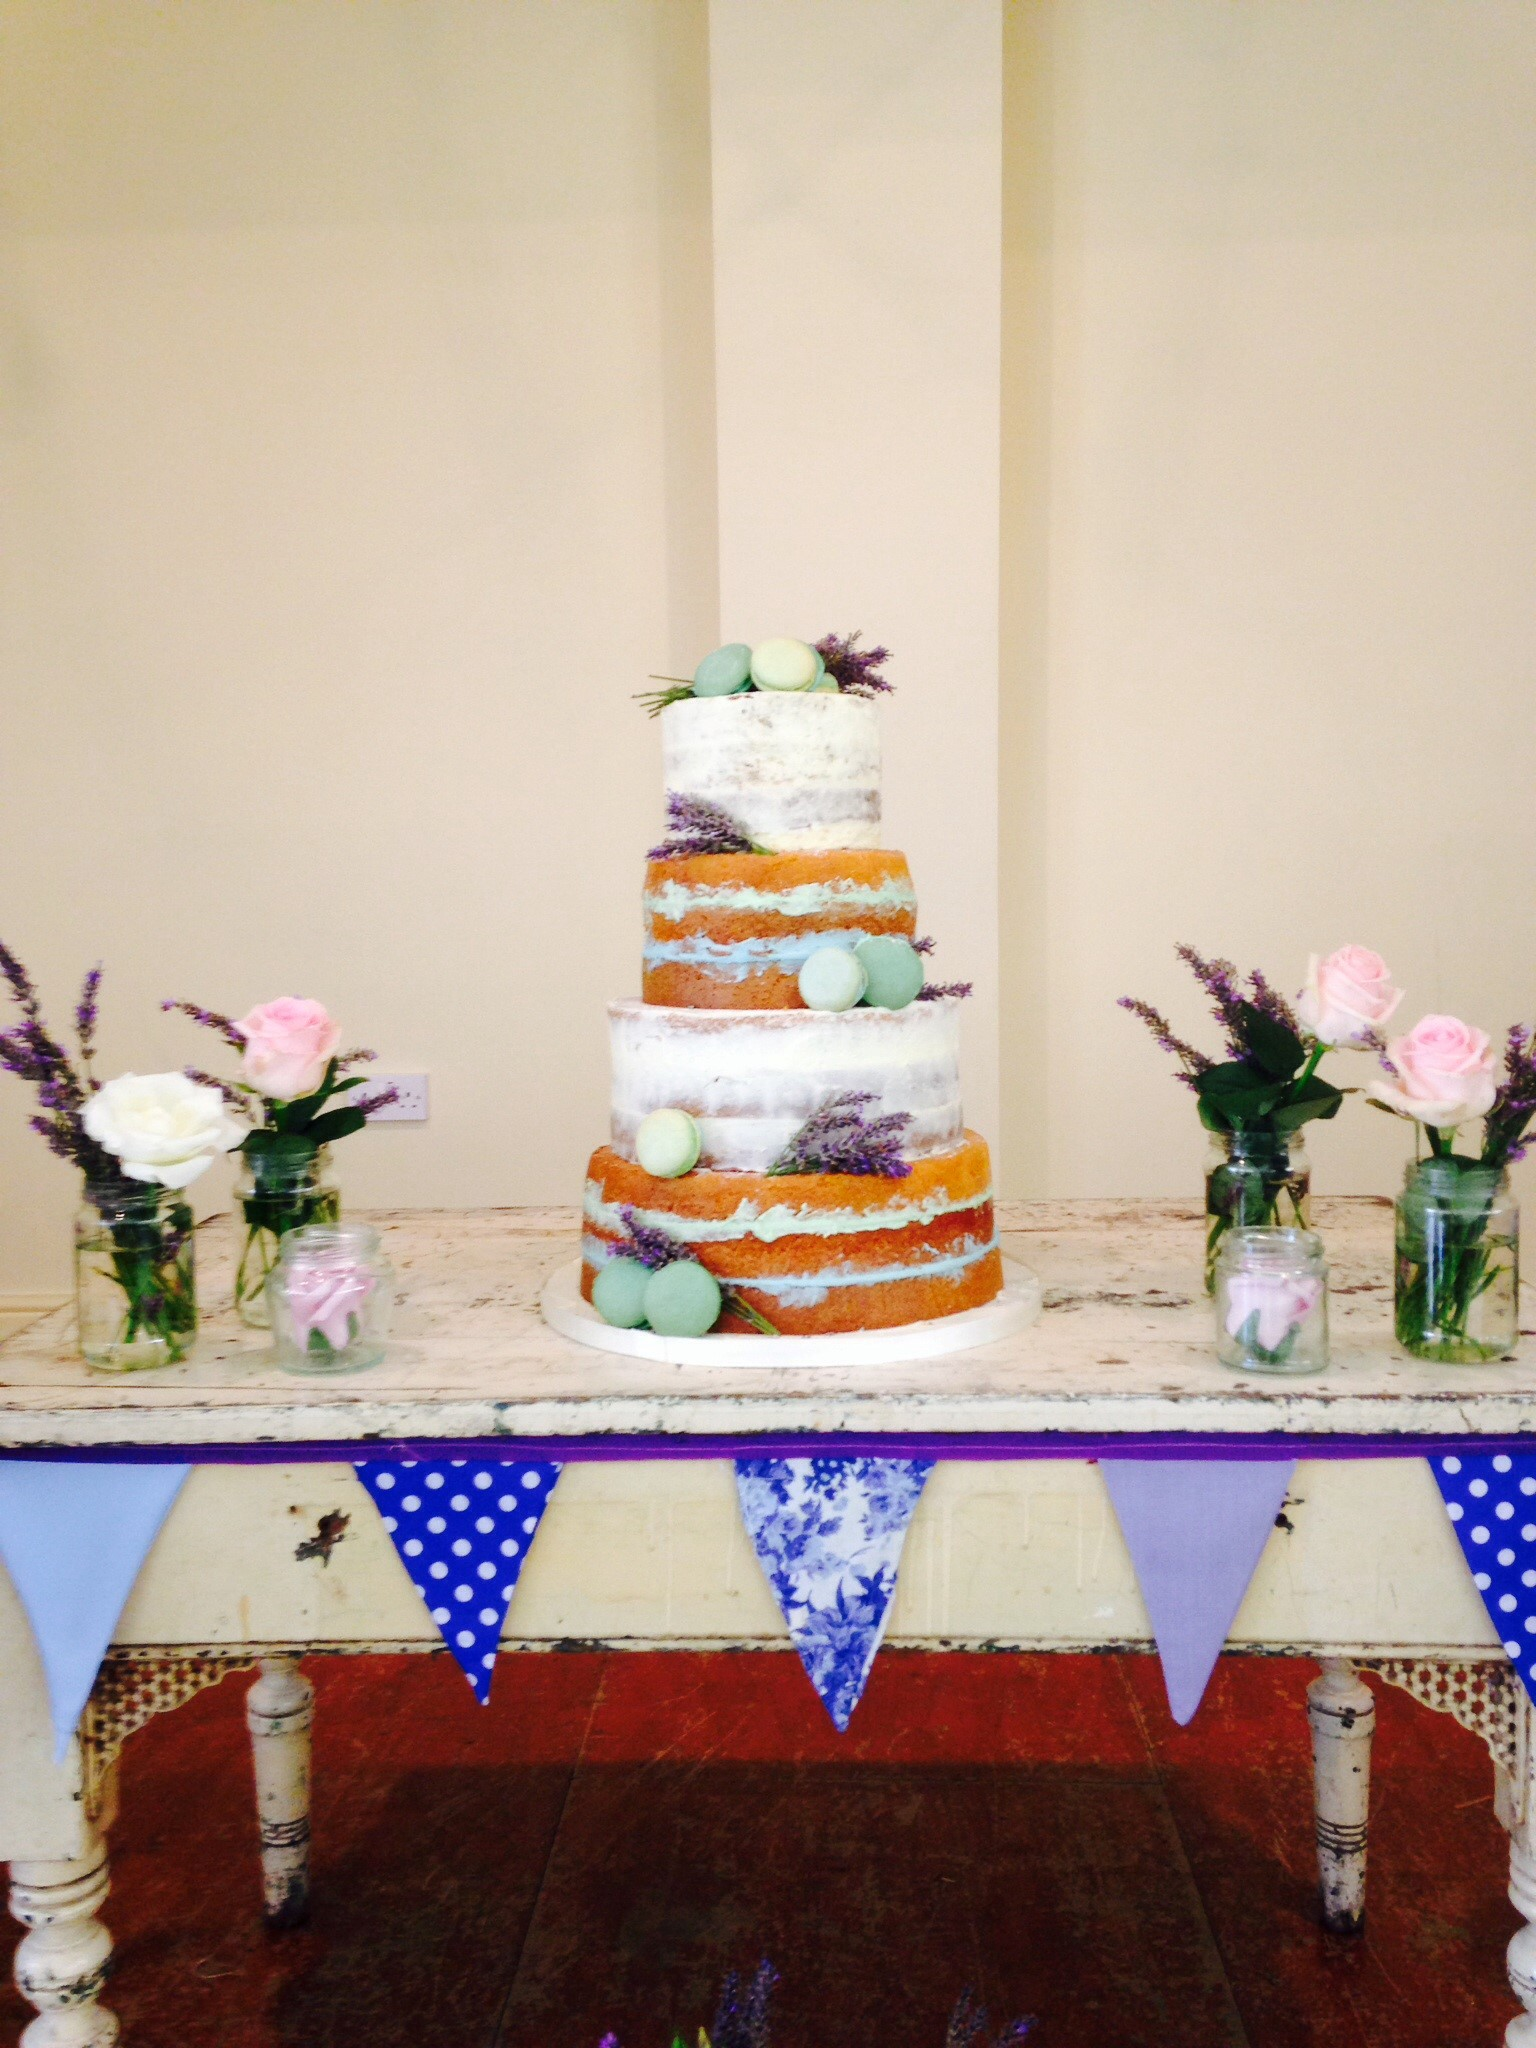 Wedding Cakes | The Little Cake Cottage